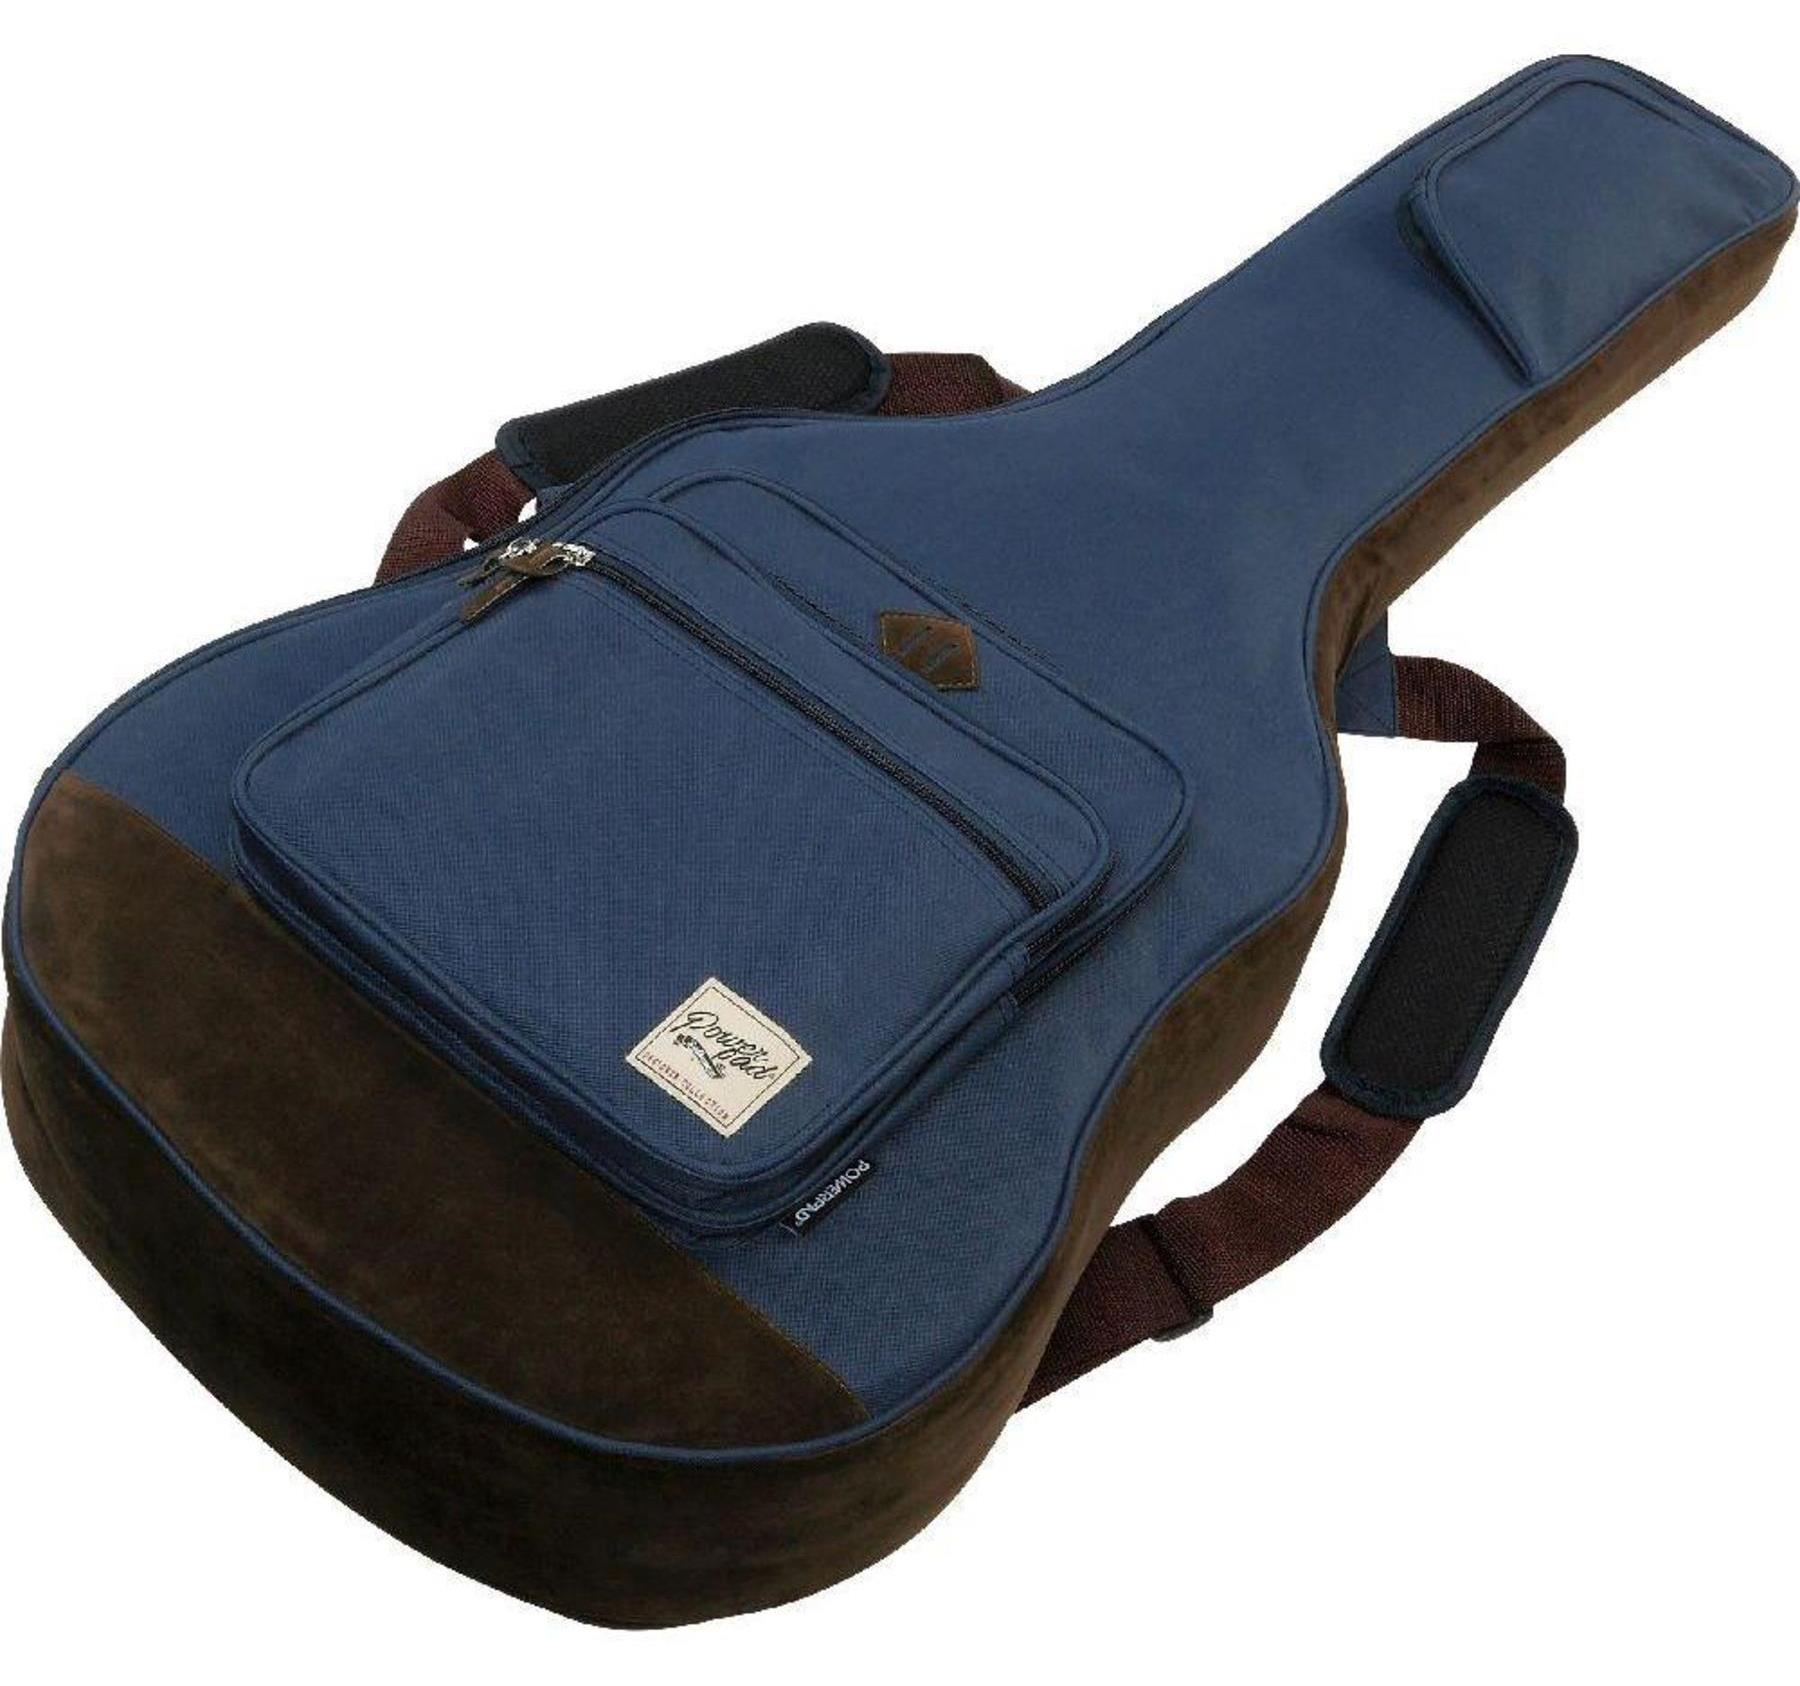 IBANEZ IAB541-NB POWERPAD® DESIGNER COLLECTION ACOUSTIC GUITAR BAG